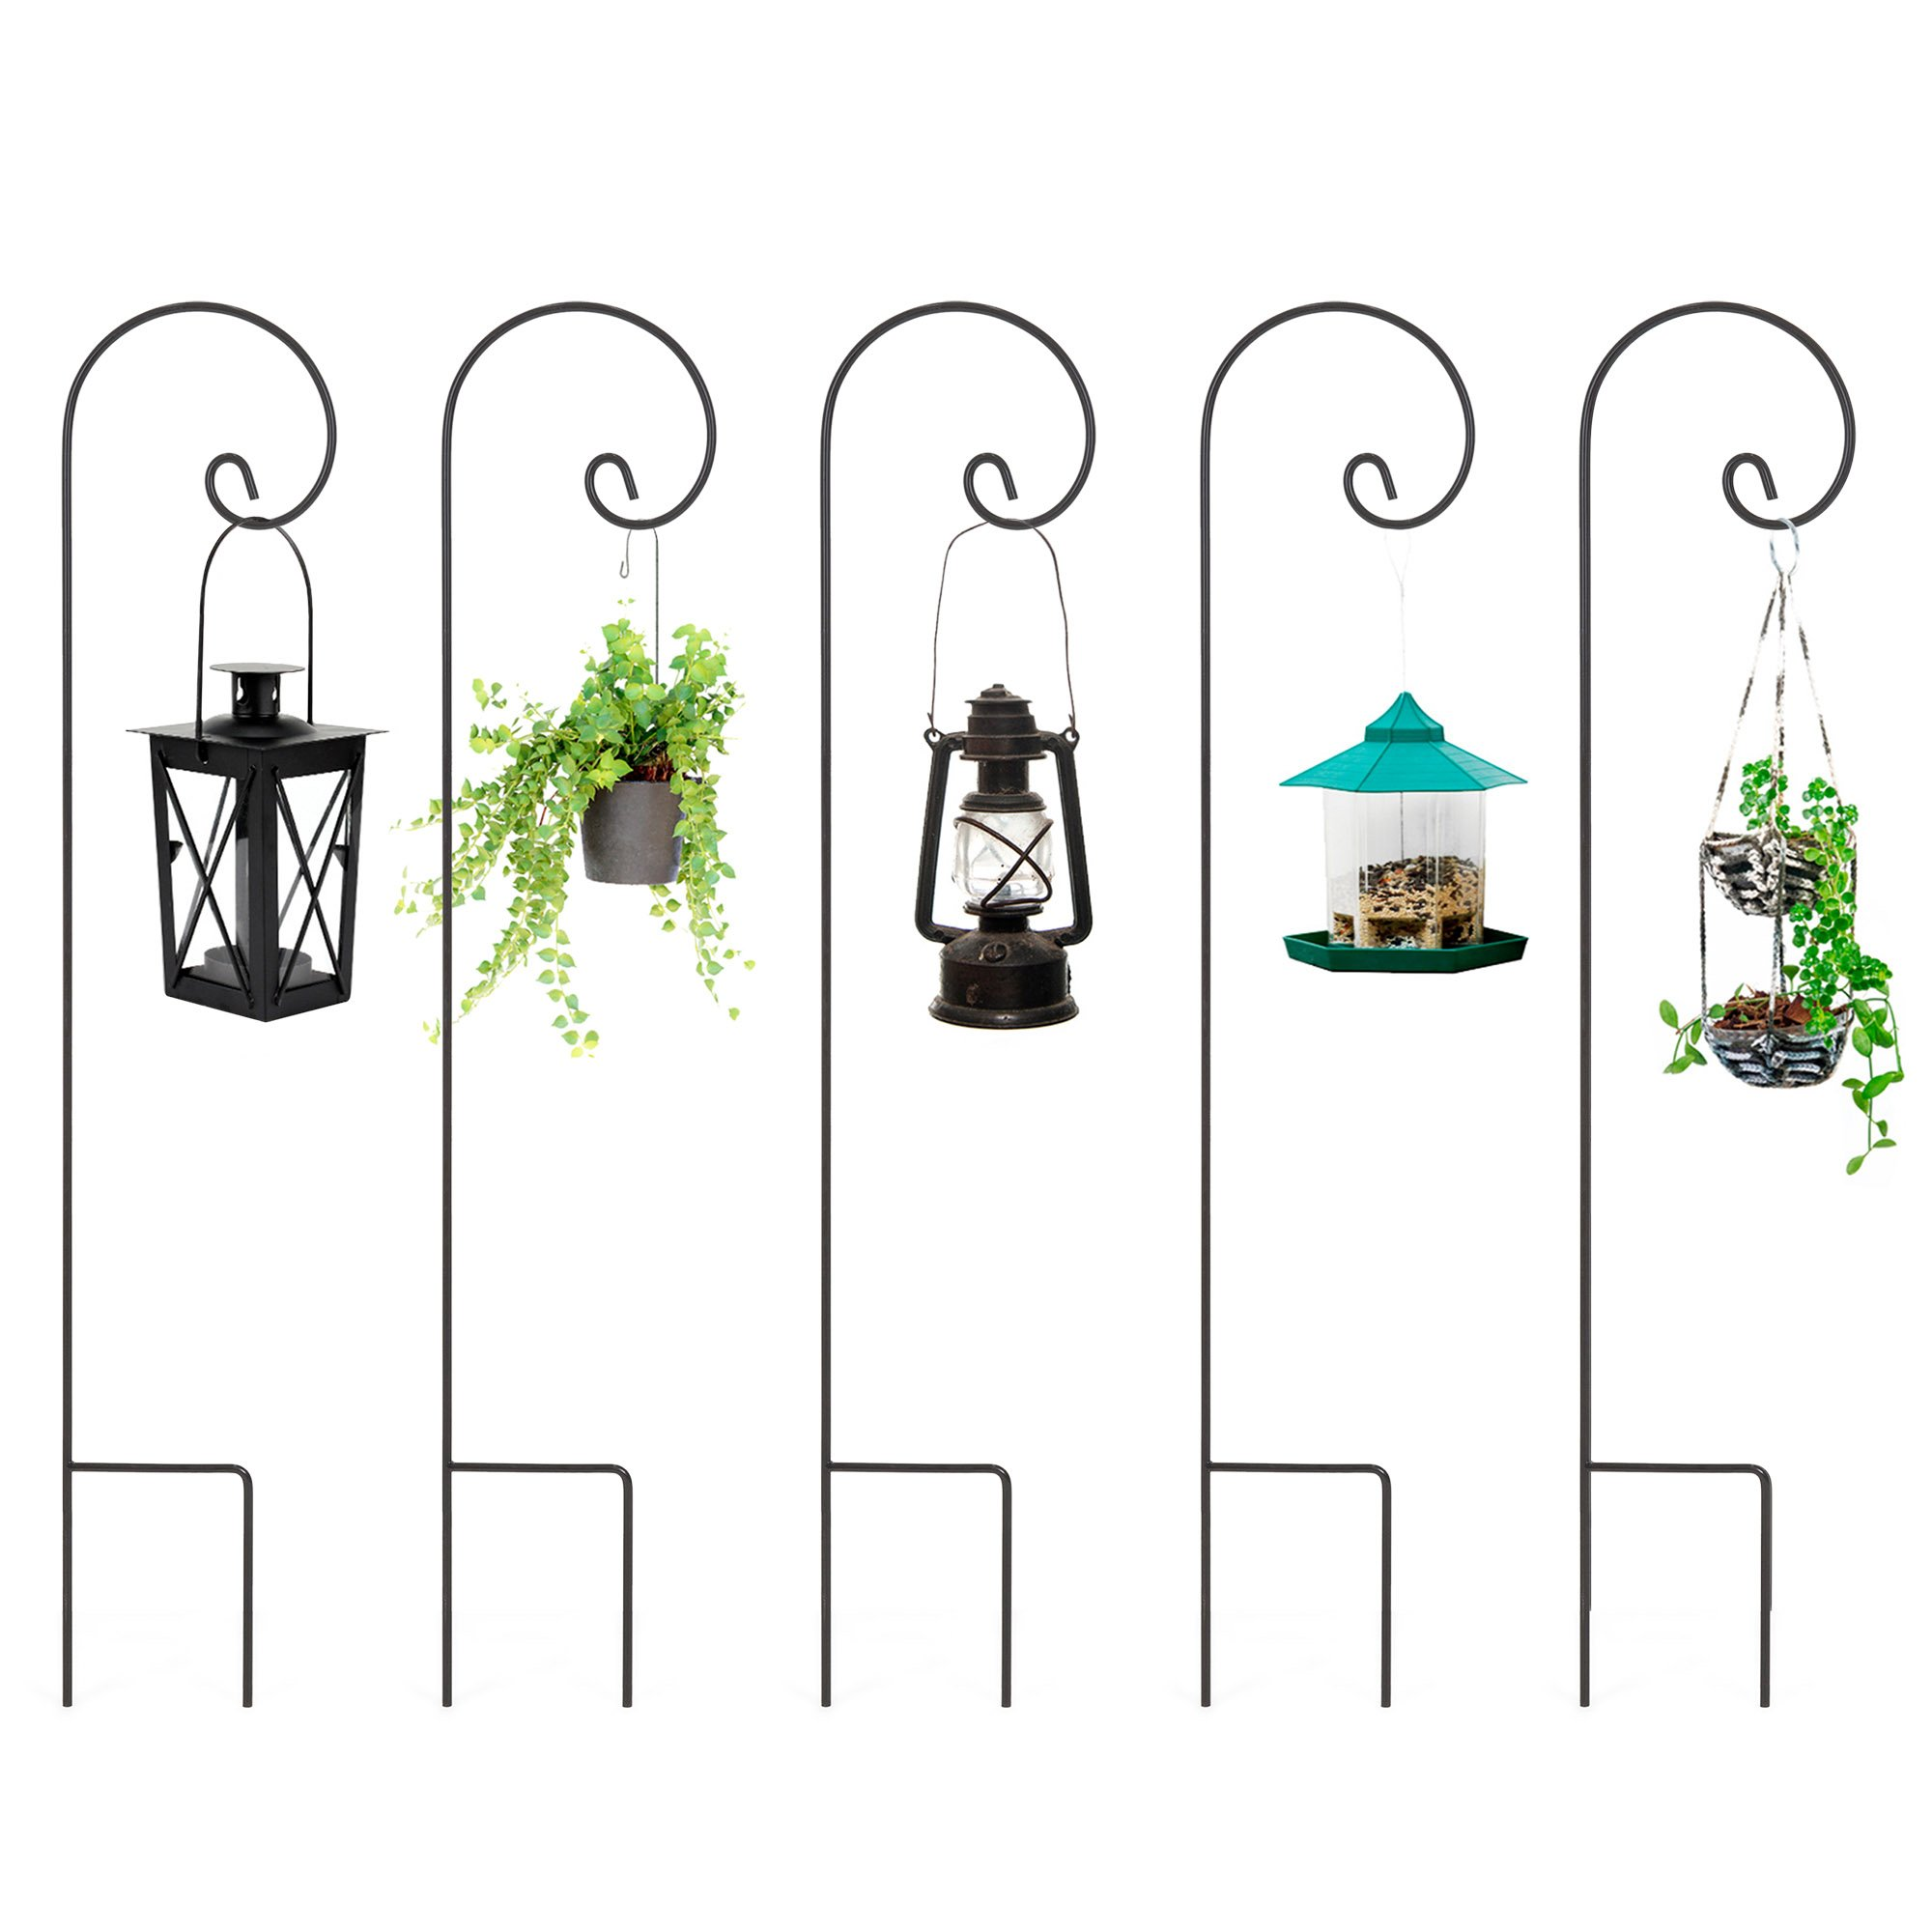 Best Choice Products Set of 5 48in Multipurpose Metal Shepherd Hook Stands for Outdoor Planters, Lanterns, Decor - Black